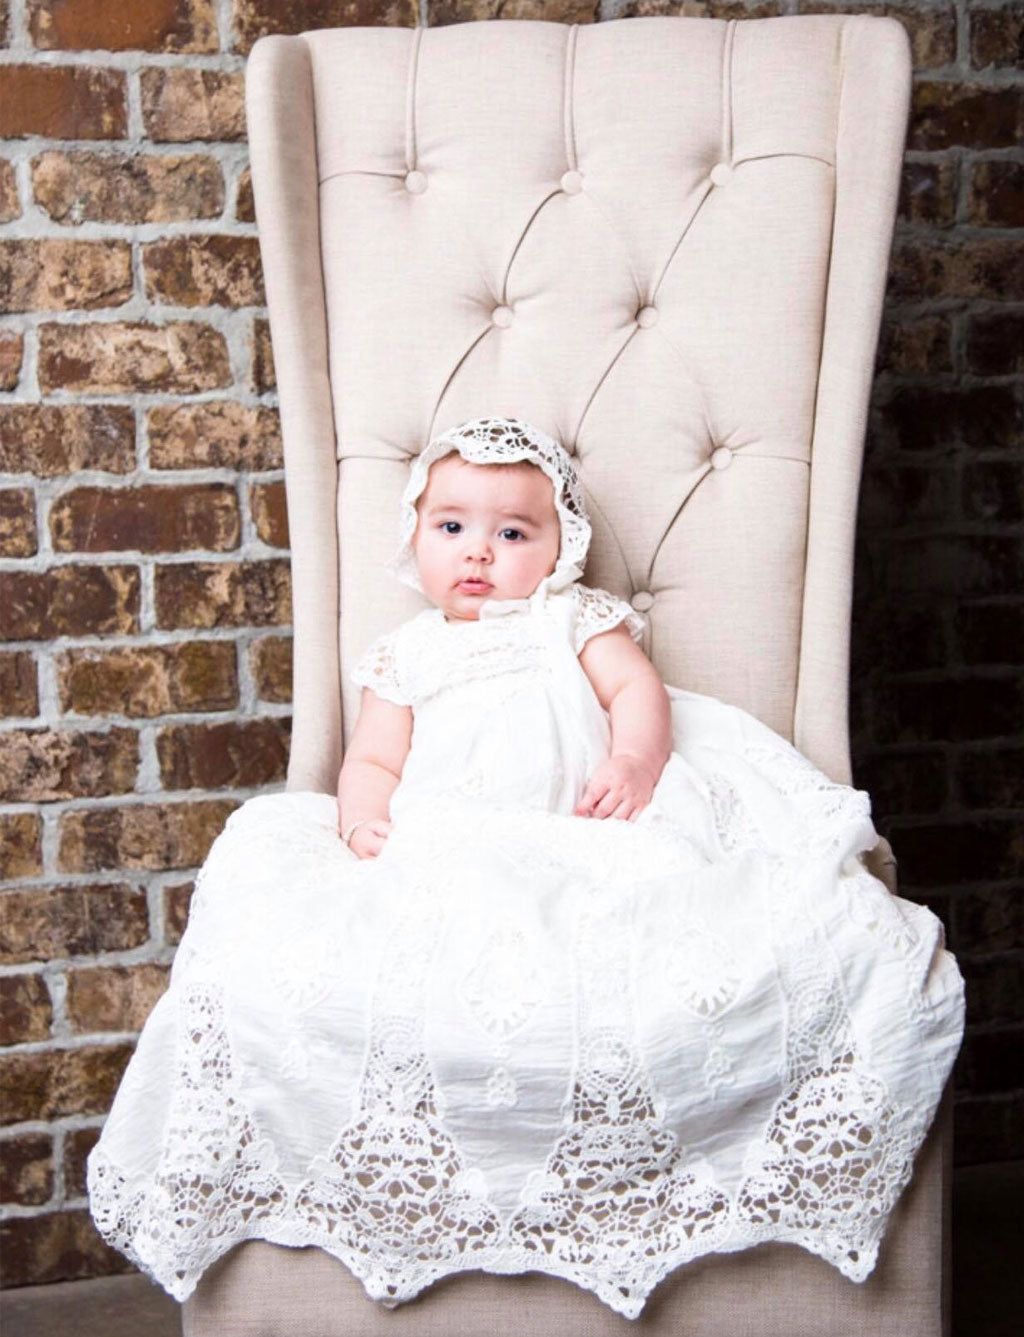 Edenelle's Blessing Day | Grace Christening Gown & Bonnet